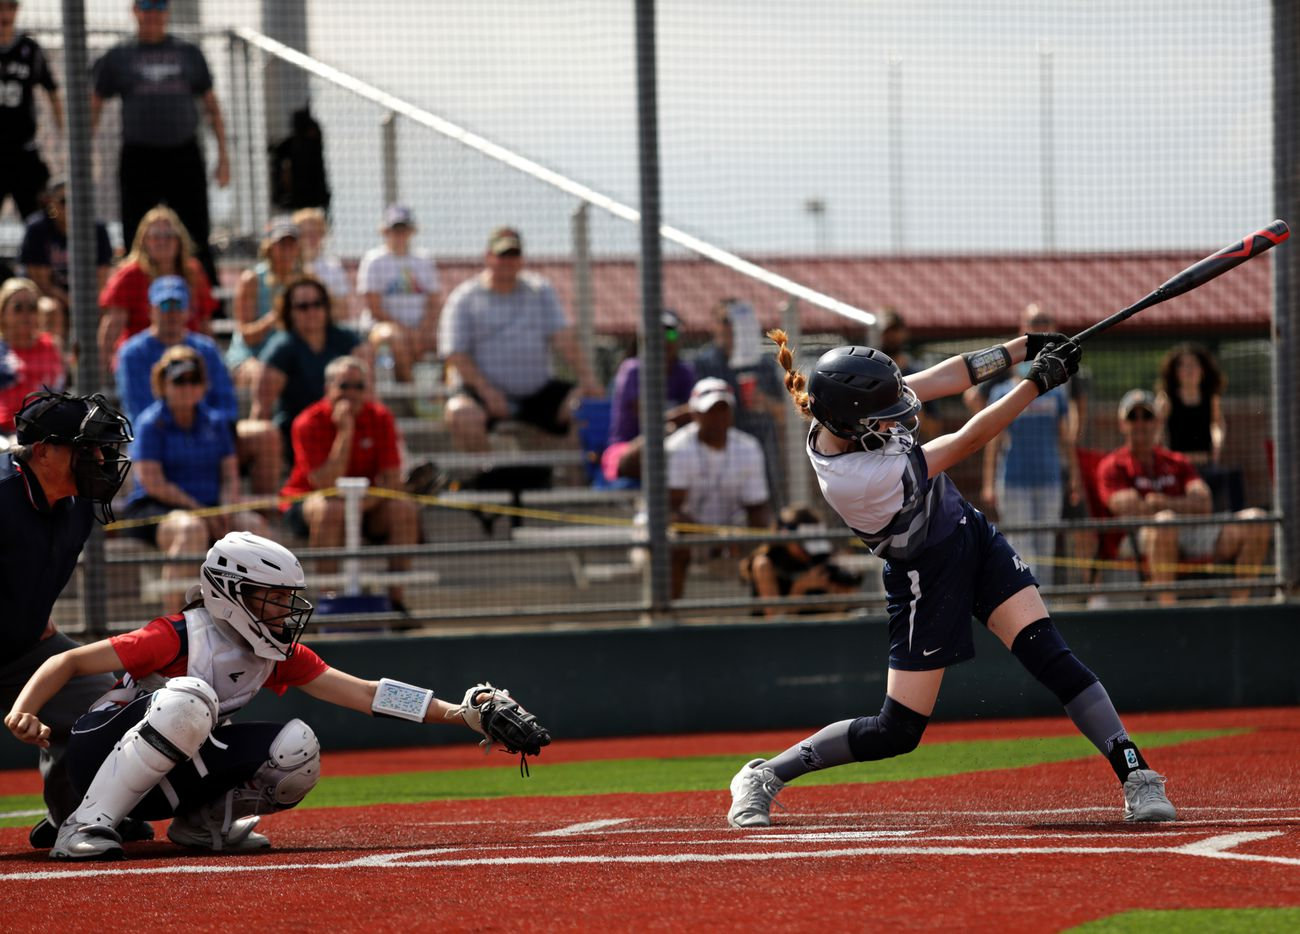 Flower Mound High School player #8, Carsyn Lee, swings for the ball during a softball game against Allen High School at Allen High School in Allen, TX, on May 15, 2021. (Jason Janik/Special Contributor)